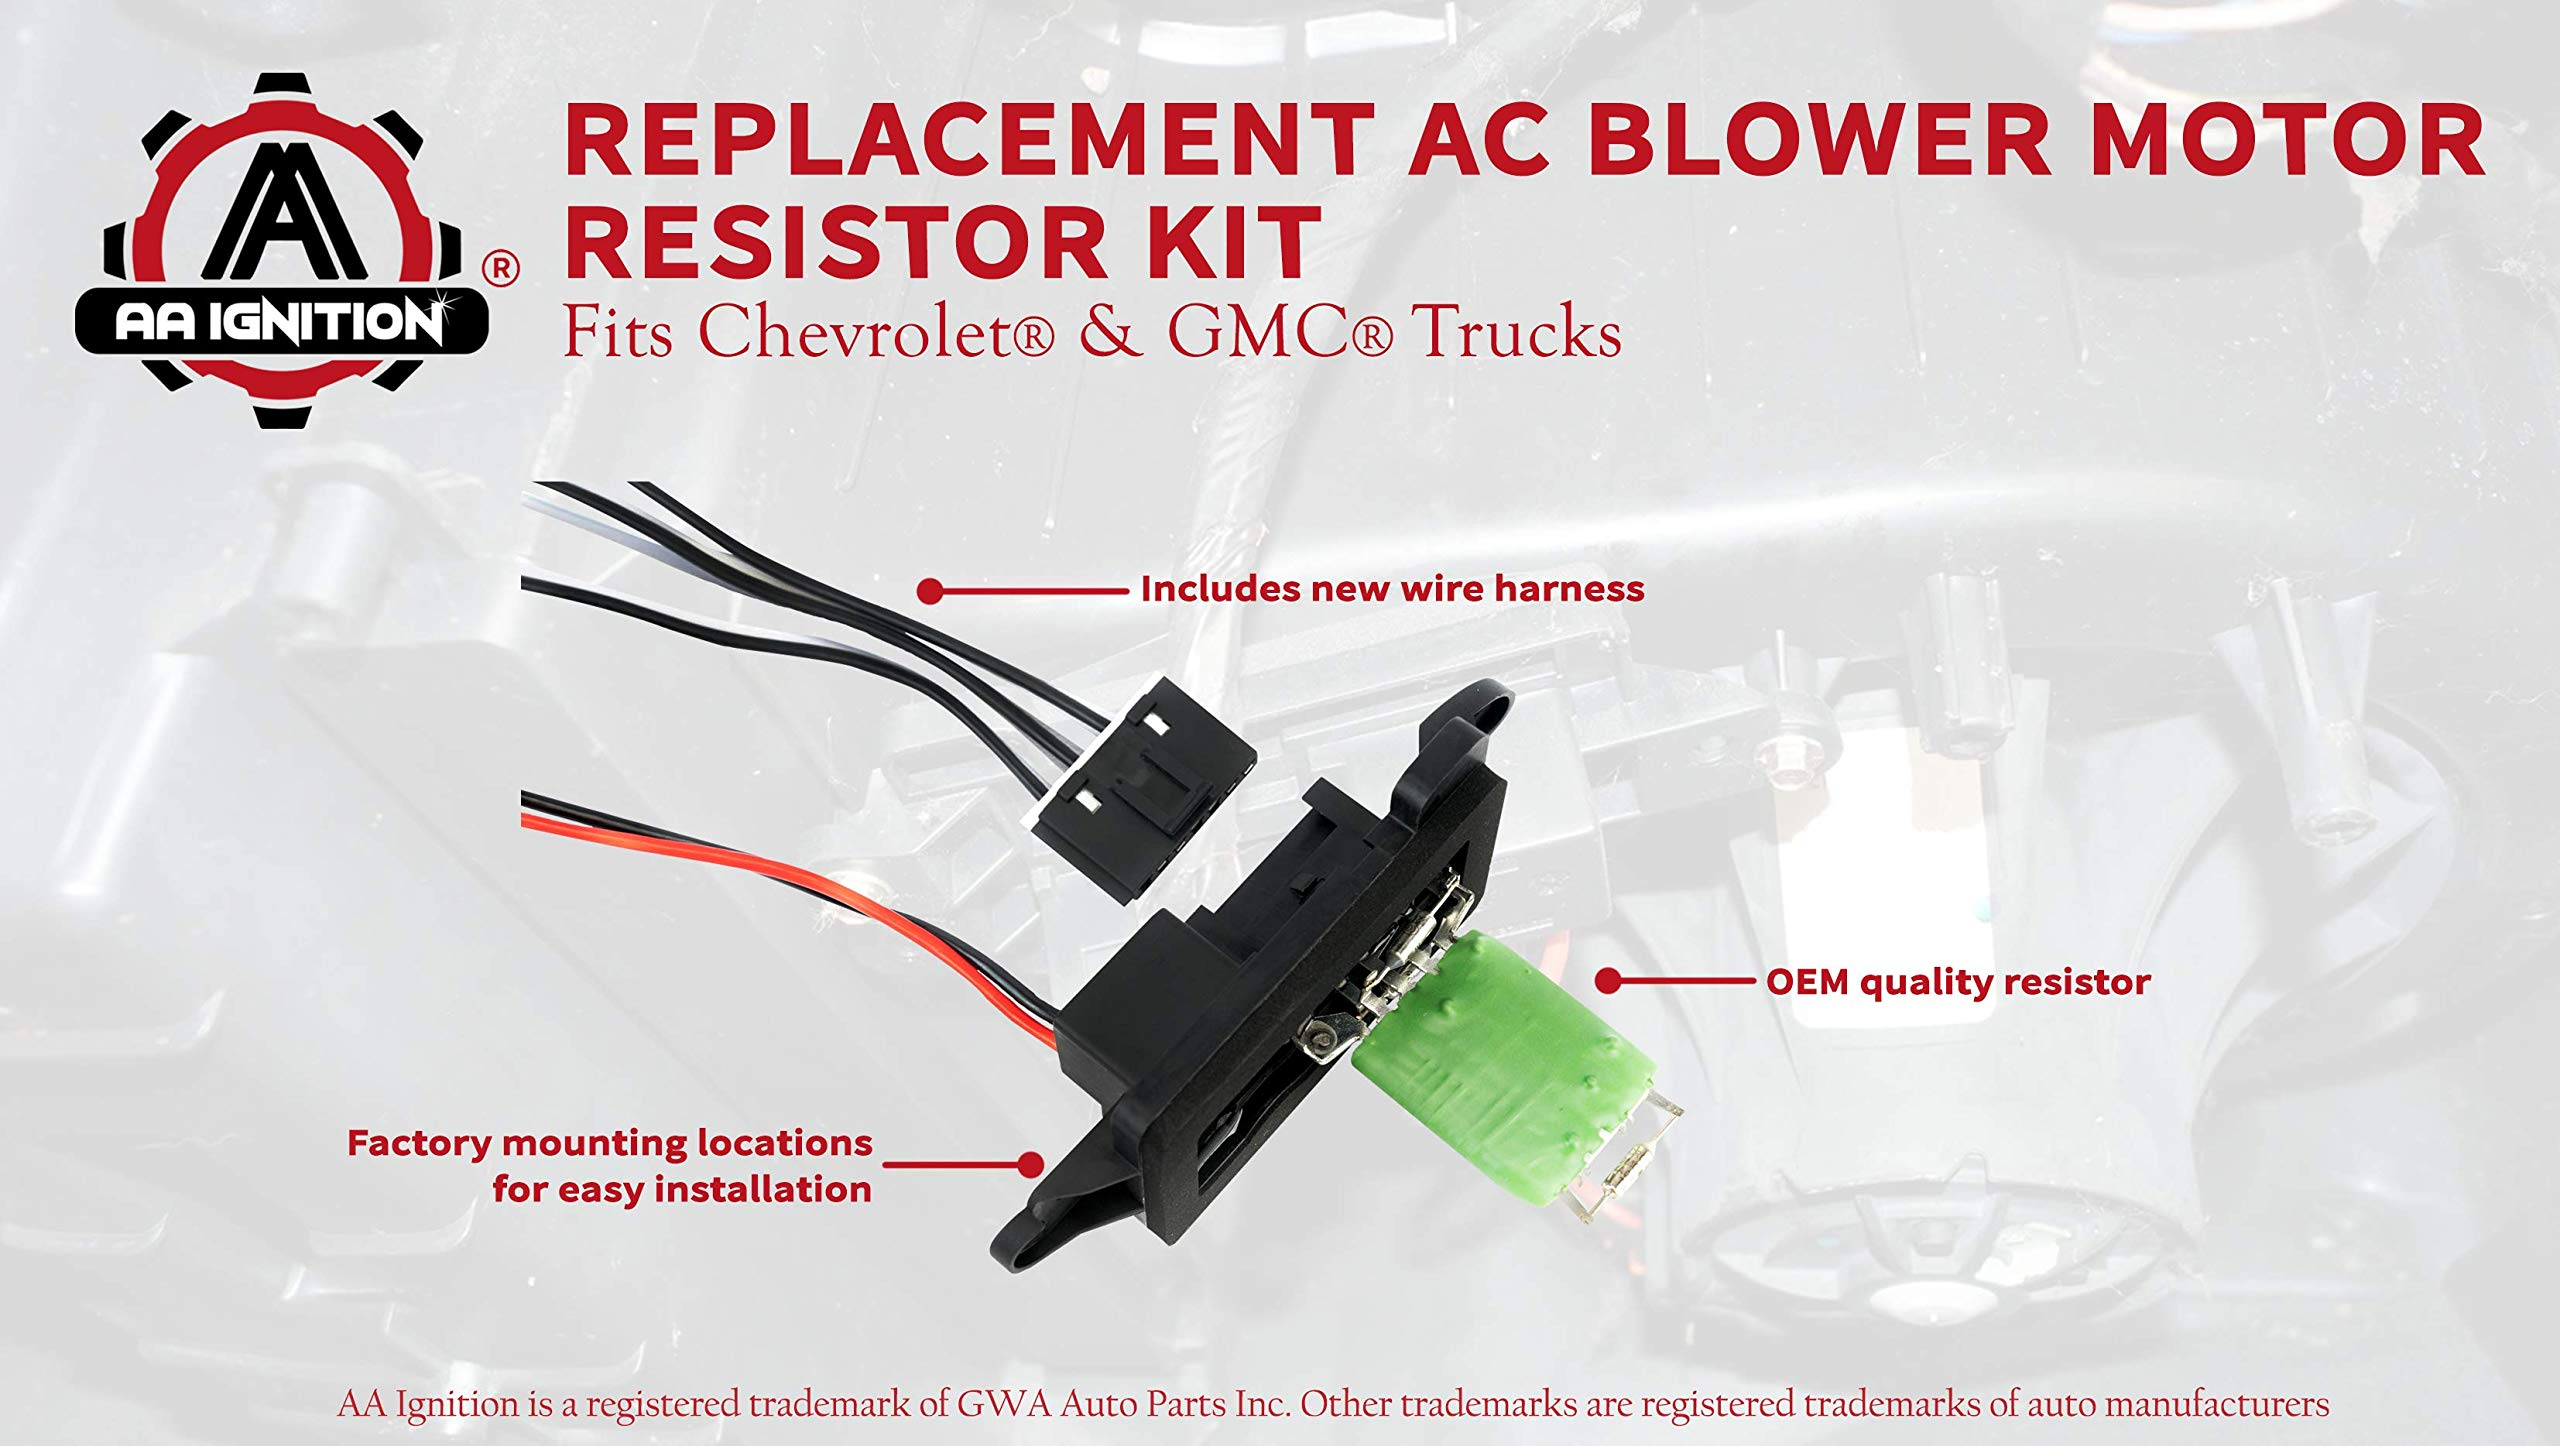 ac blower motor resistor kit with harness - replaces 89019088, 973-405,  15-81086, 22807123 fits chevy silverado, tahoe, suburban, avalanche, gmc  sierra,